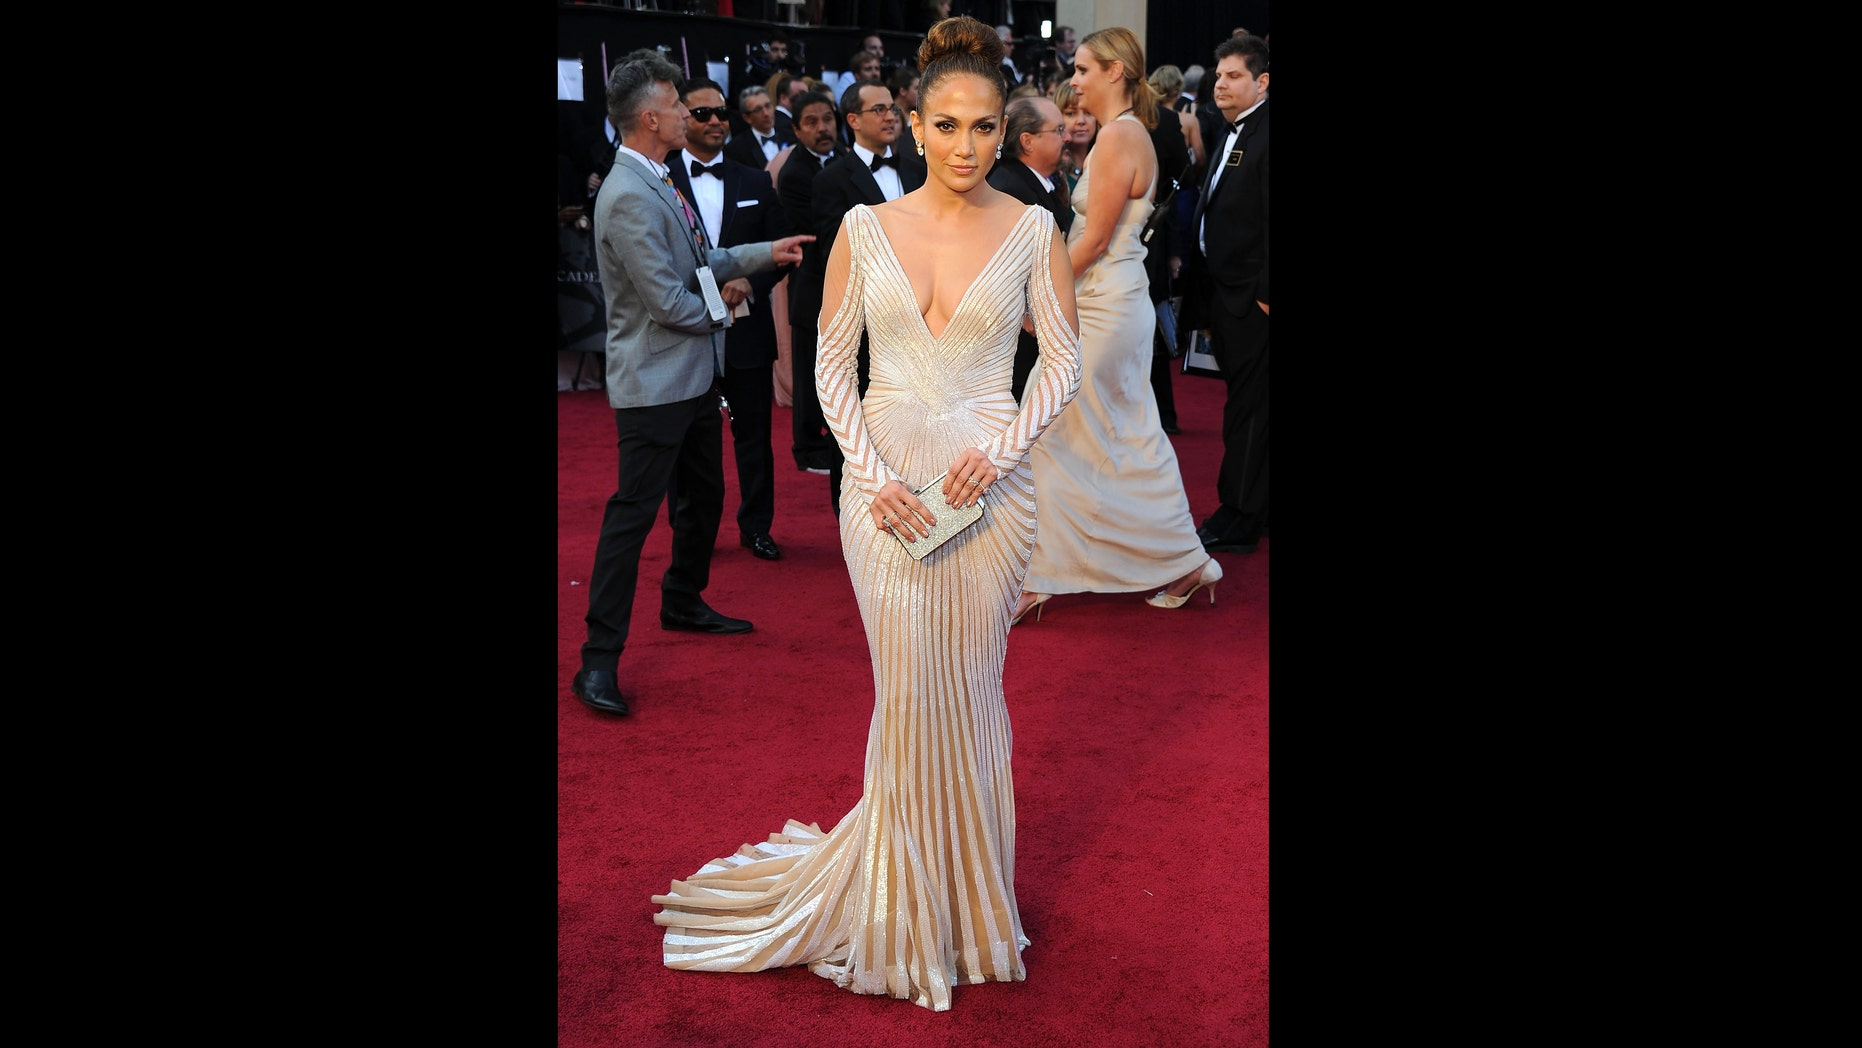 Feb. 26, 2012: Jennifer Lopez arrives at the 84th Annual Academy Awards held at the Hollywood & Highland Center in Hollywood, Calif.